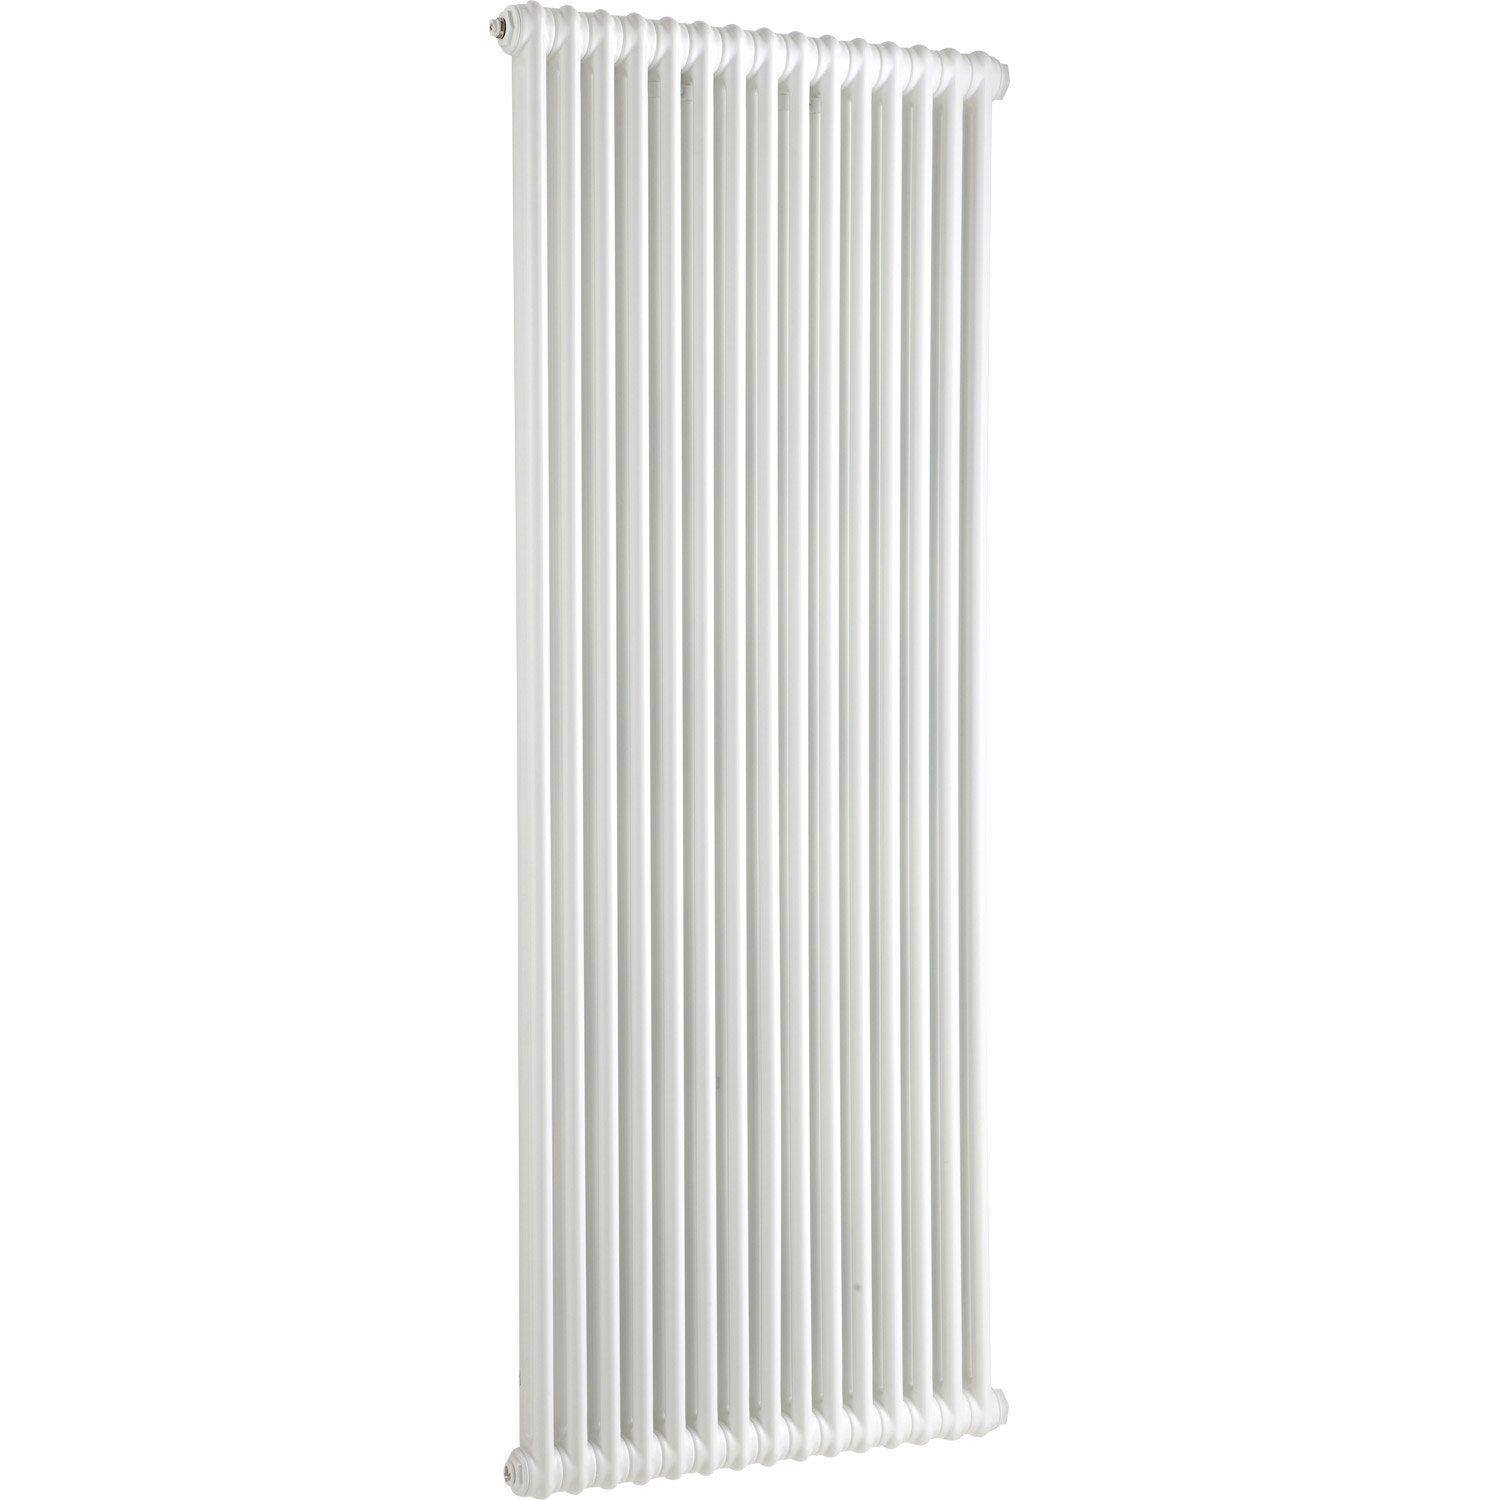 radiateur chauffage central acier tesi 2 blanc 1864w leroy merlin. Black Bedroom Furniture Sets. Home Design Ideas